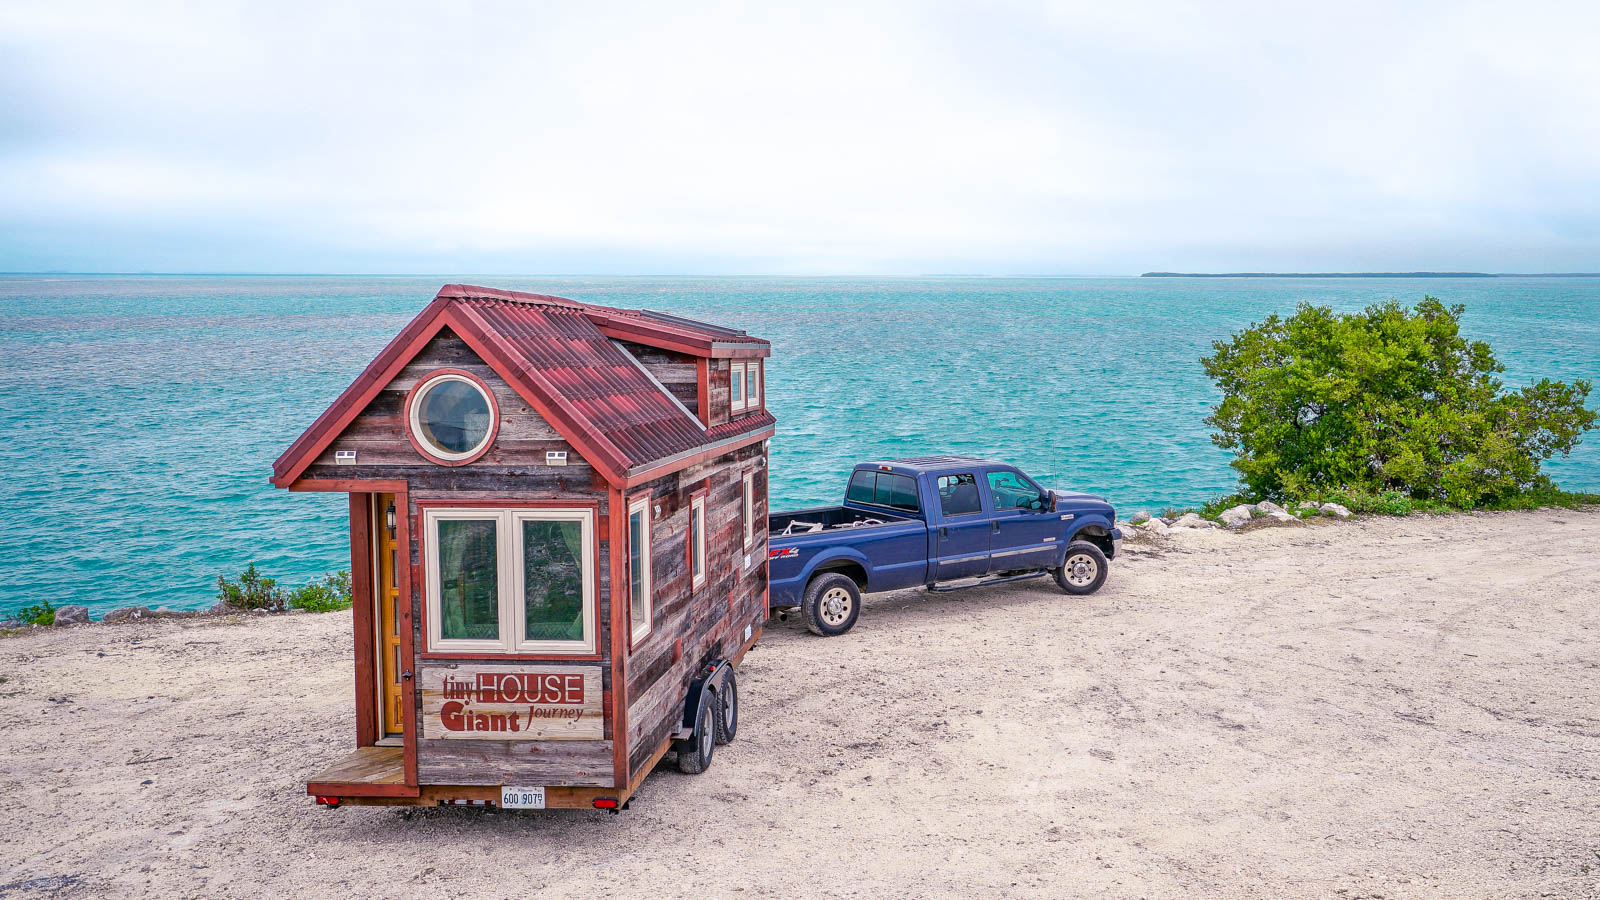 Florida Keys: Tortuga Titanic & Lobster Warrior - Tiny House Giant Journey